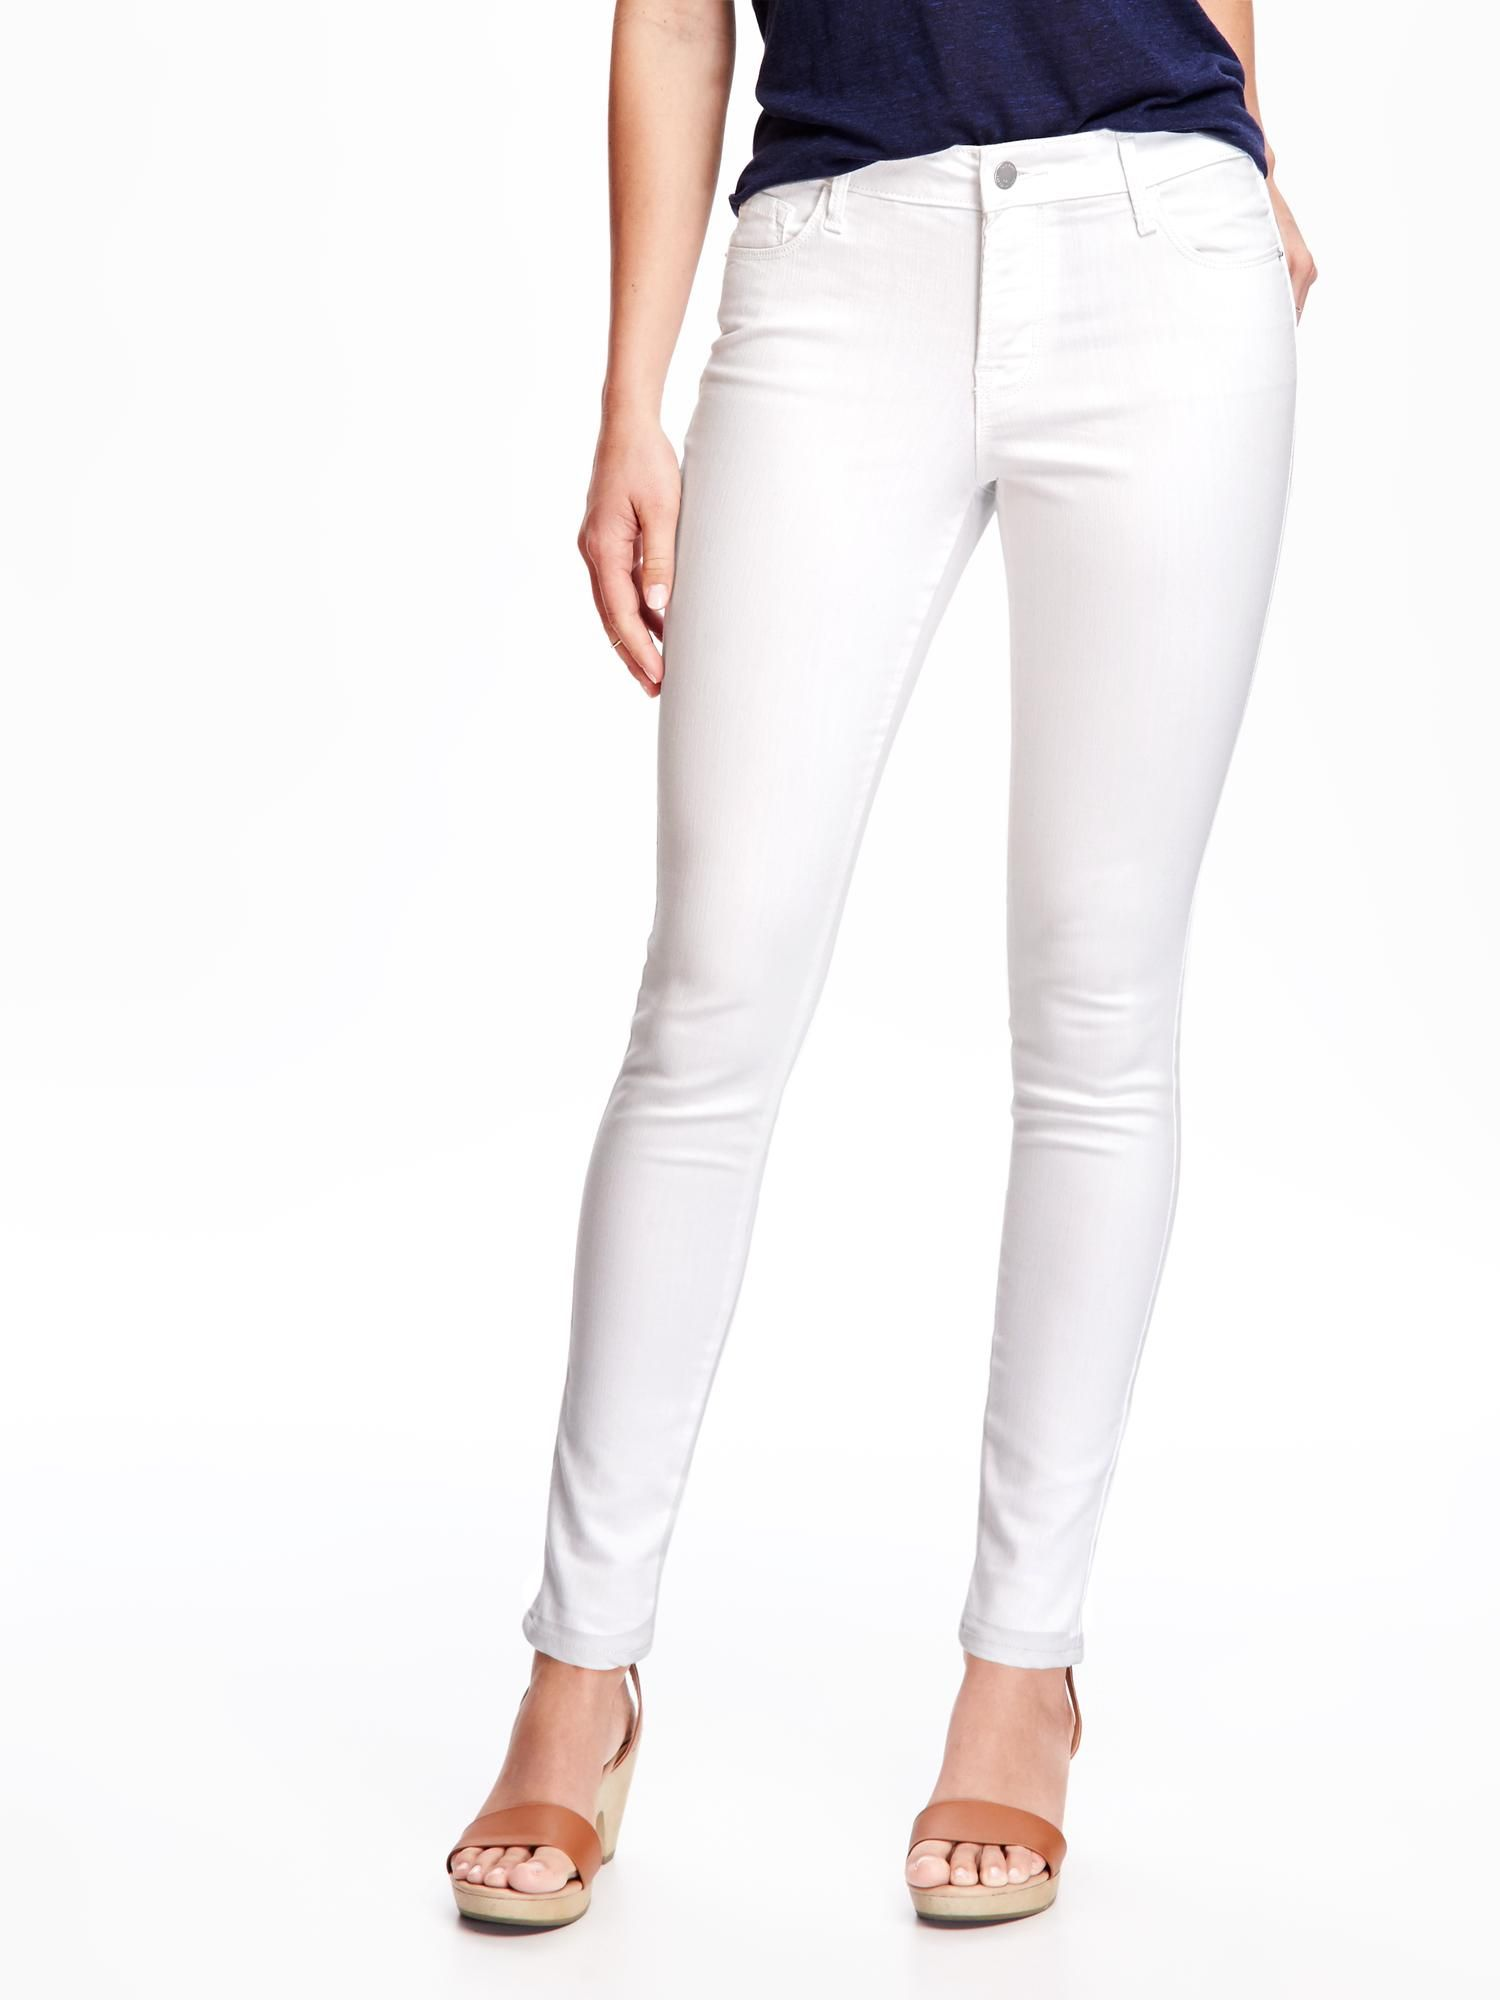 c5ce35cc4bf Mid-Rise Clean Slate Rockstar Super Skinny Jeans for Women | My ...